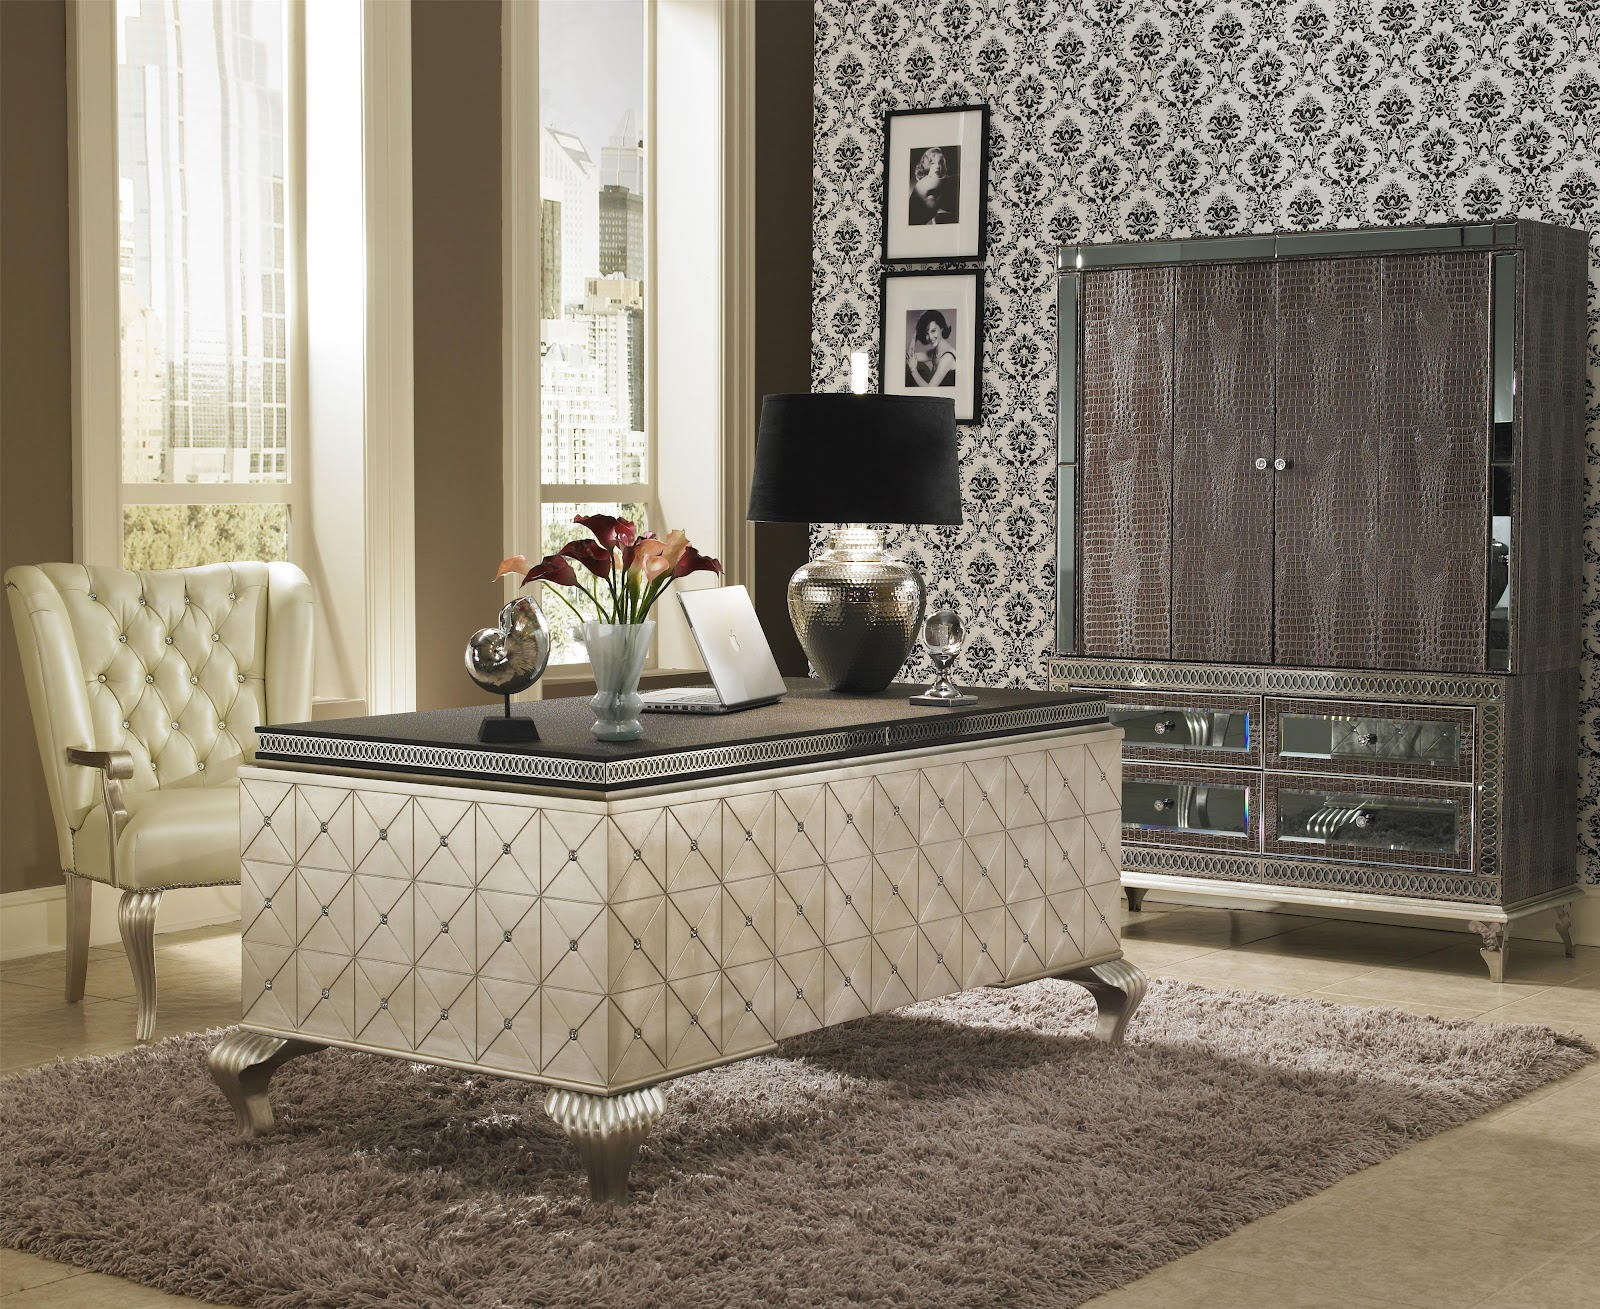 Knoxville Wholesale Furniture Hollywood Swank by Aico